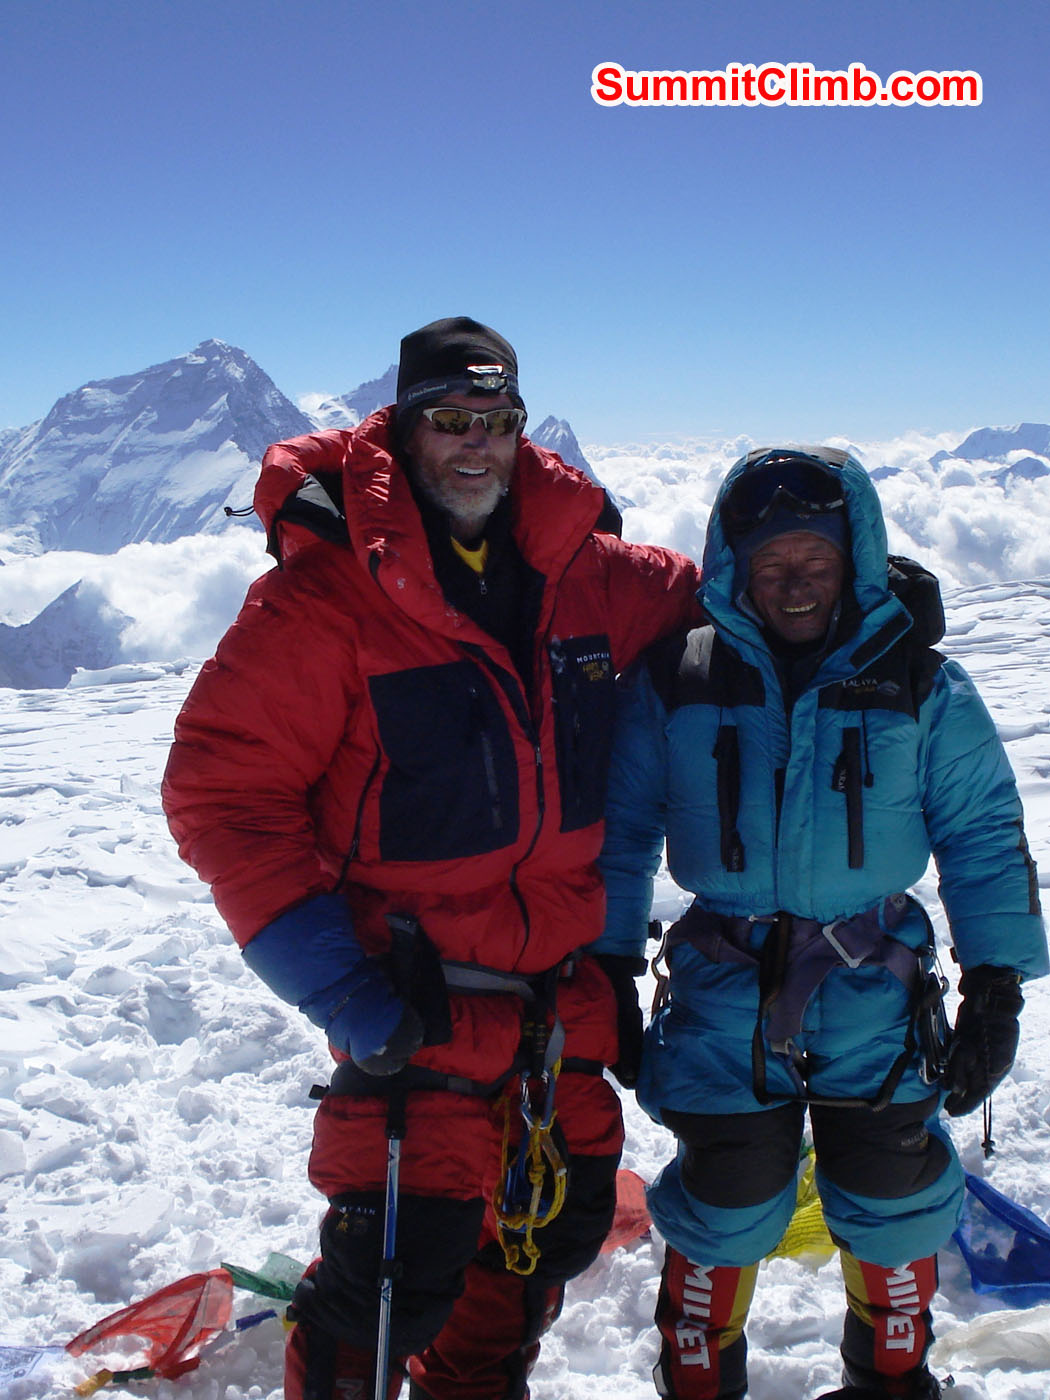 Glenn and Jangbu on the Summit of Cho Oyu. With Everest View. Alan Barclay Photo